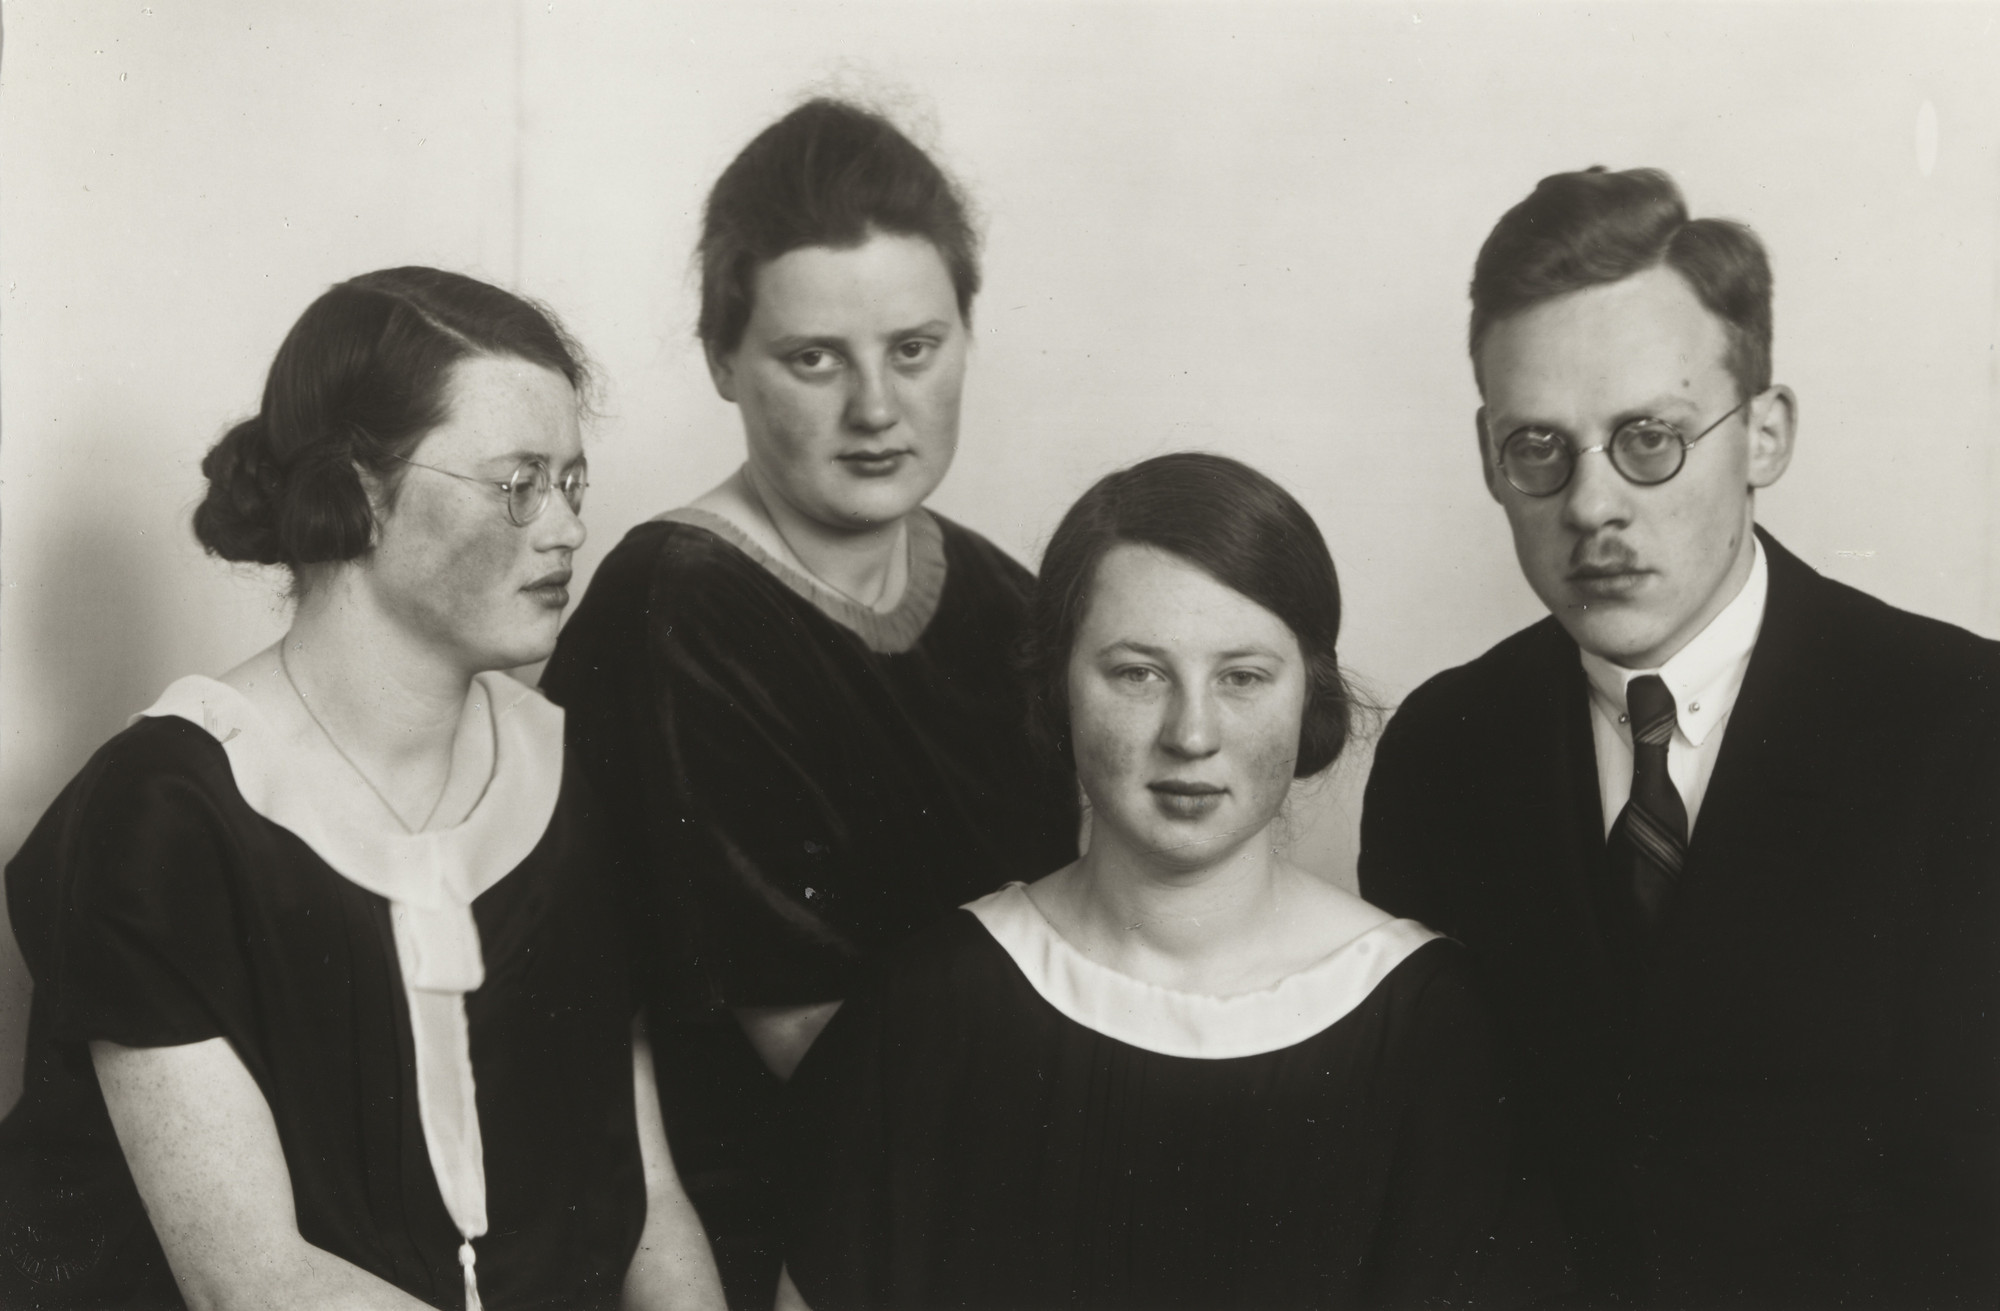 August Sander. Sisters and Brother. 1924